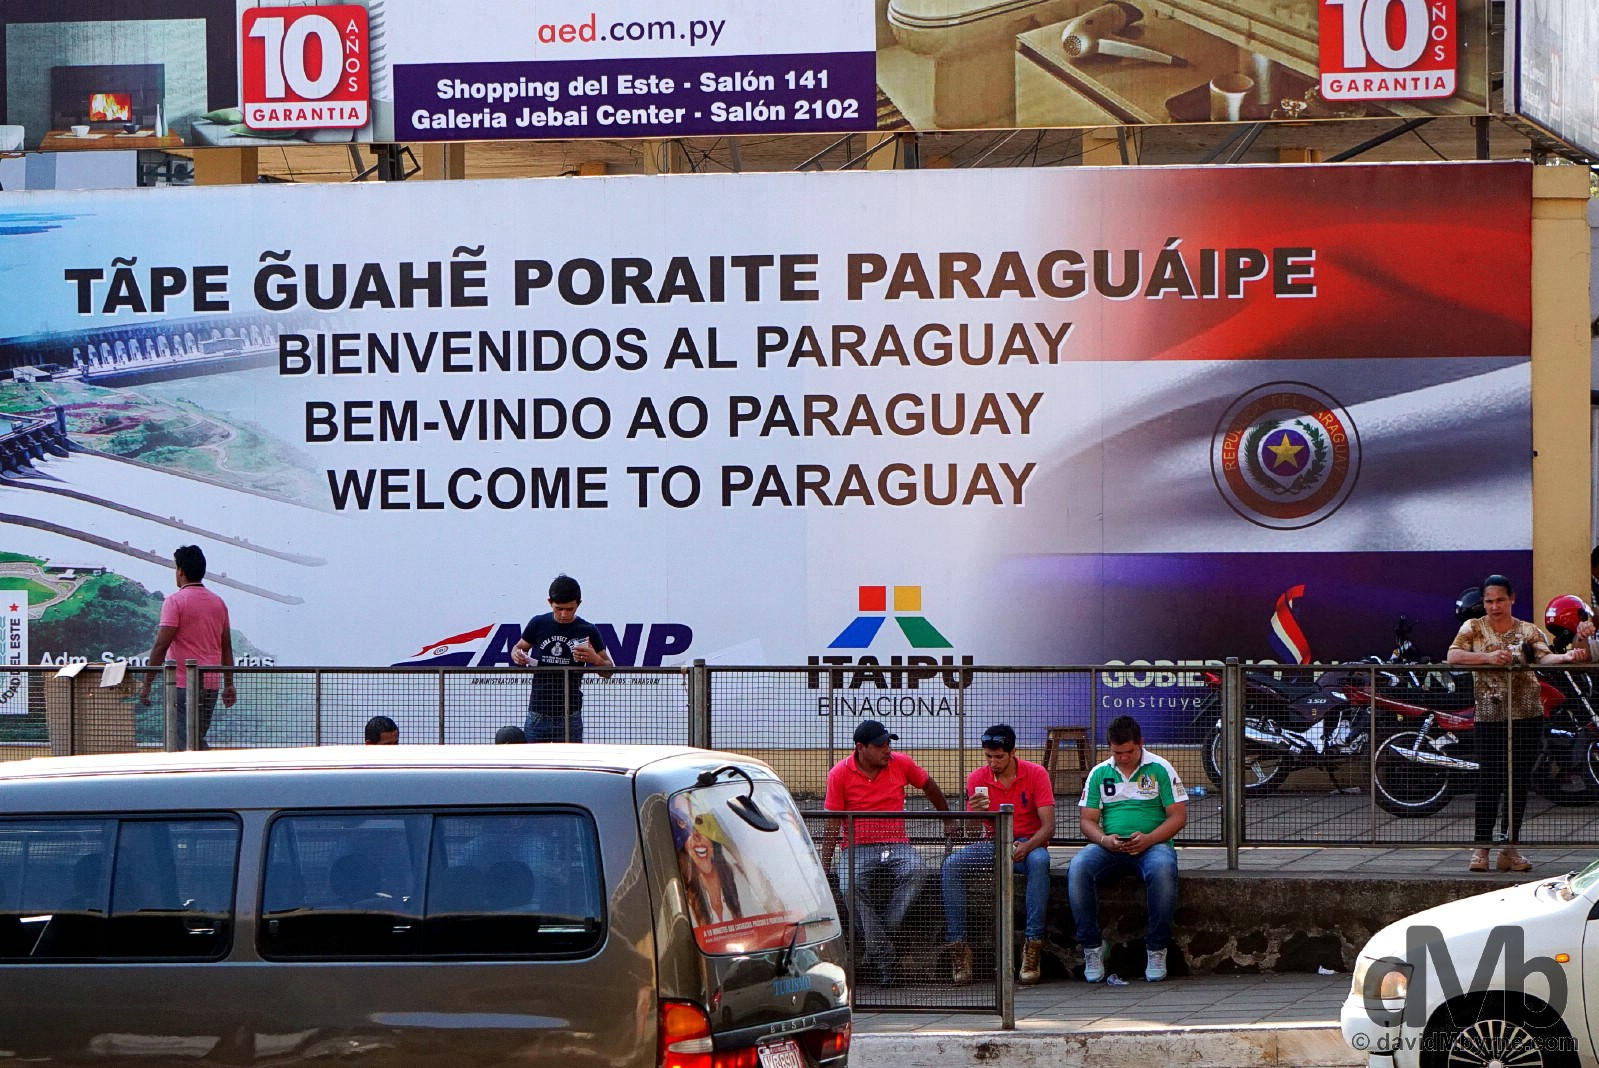 Welcome to Paraguay. Captured leaving the Paraguayan border city of Ciudad del Este to cross the Friendship Bridge into Brazil. September 15, 2015.